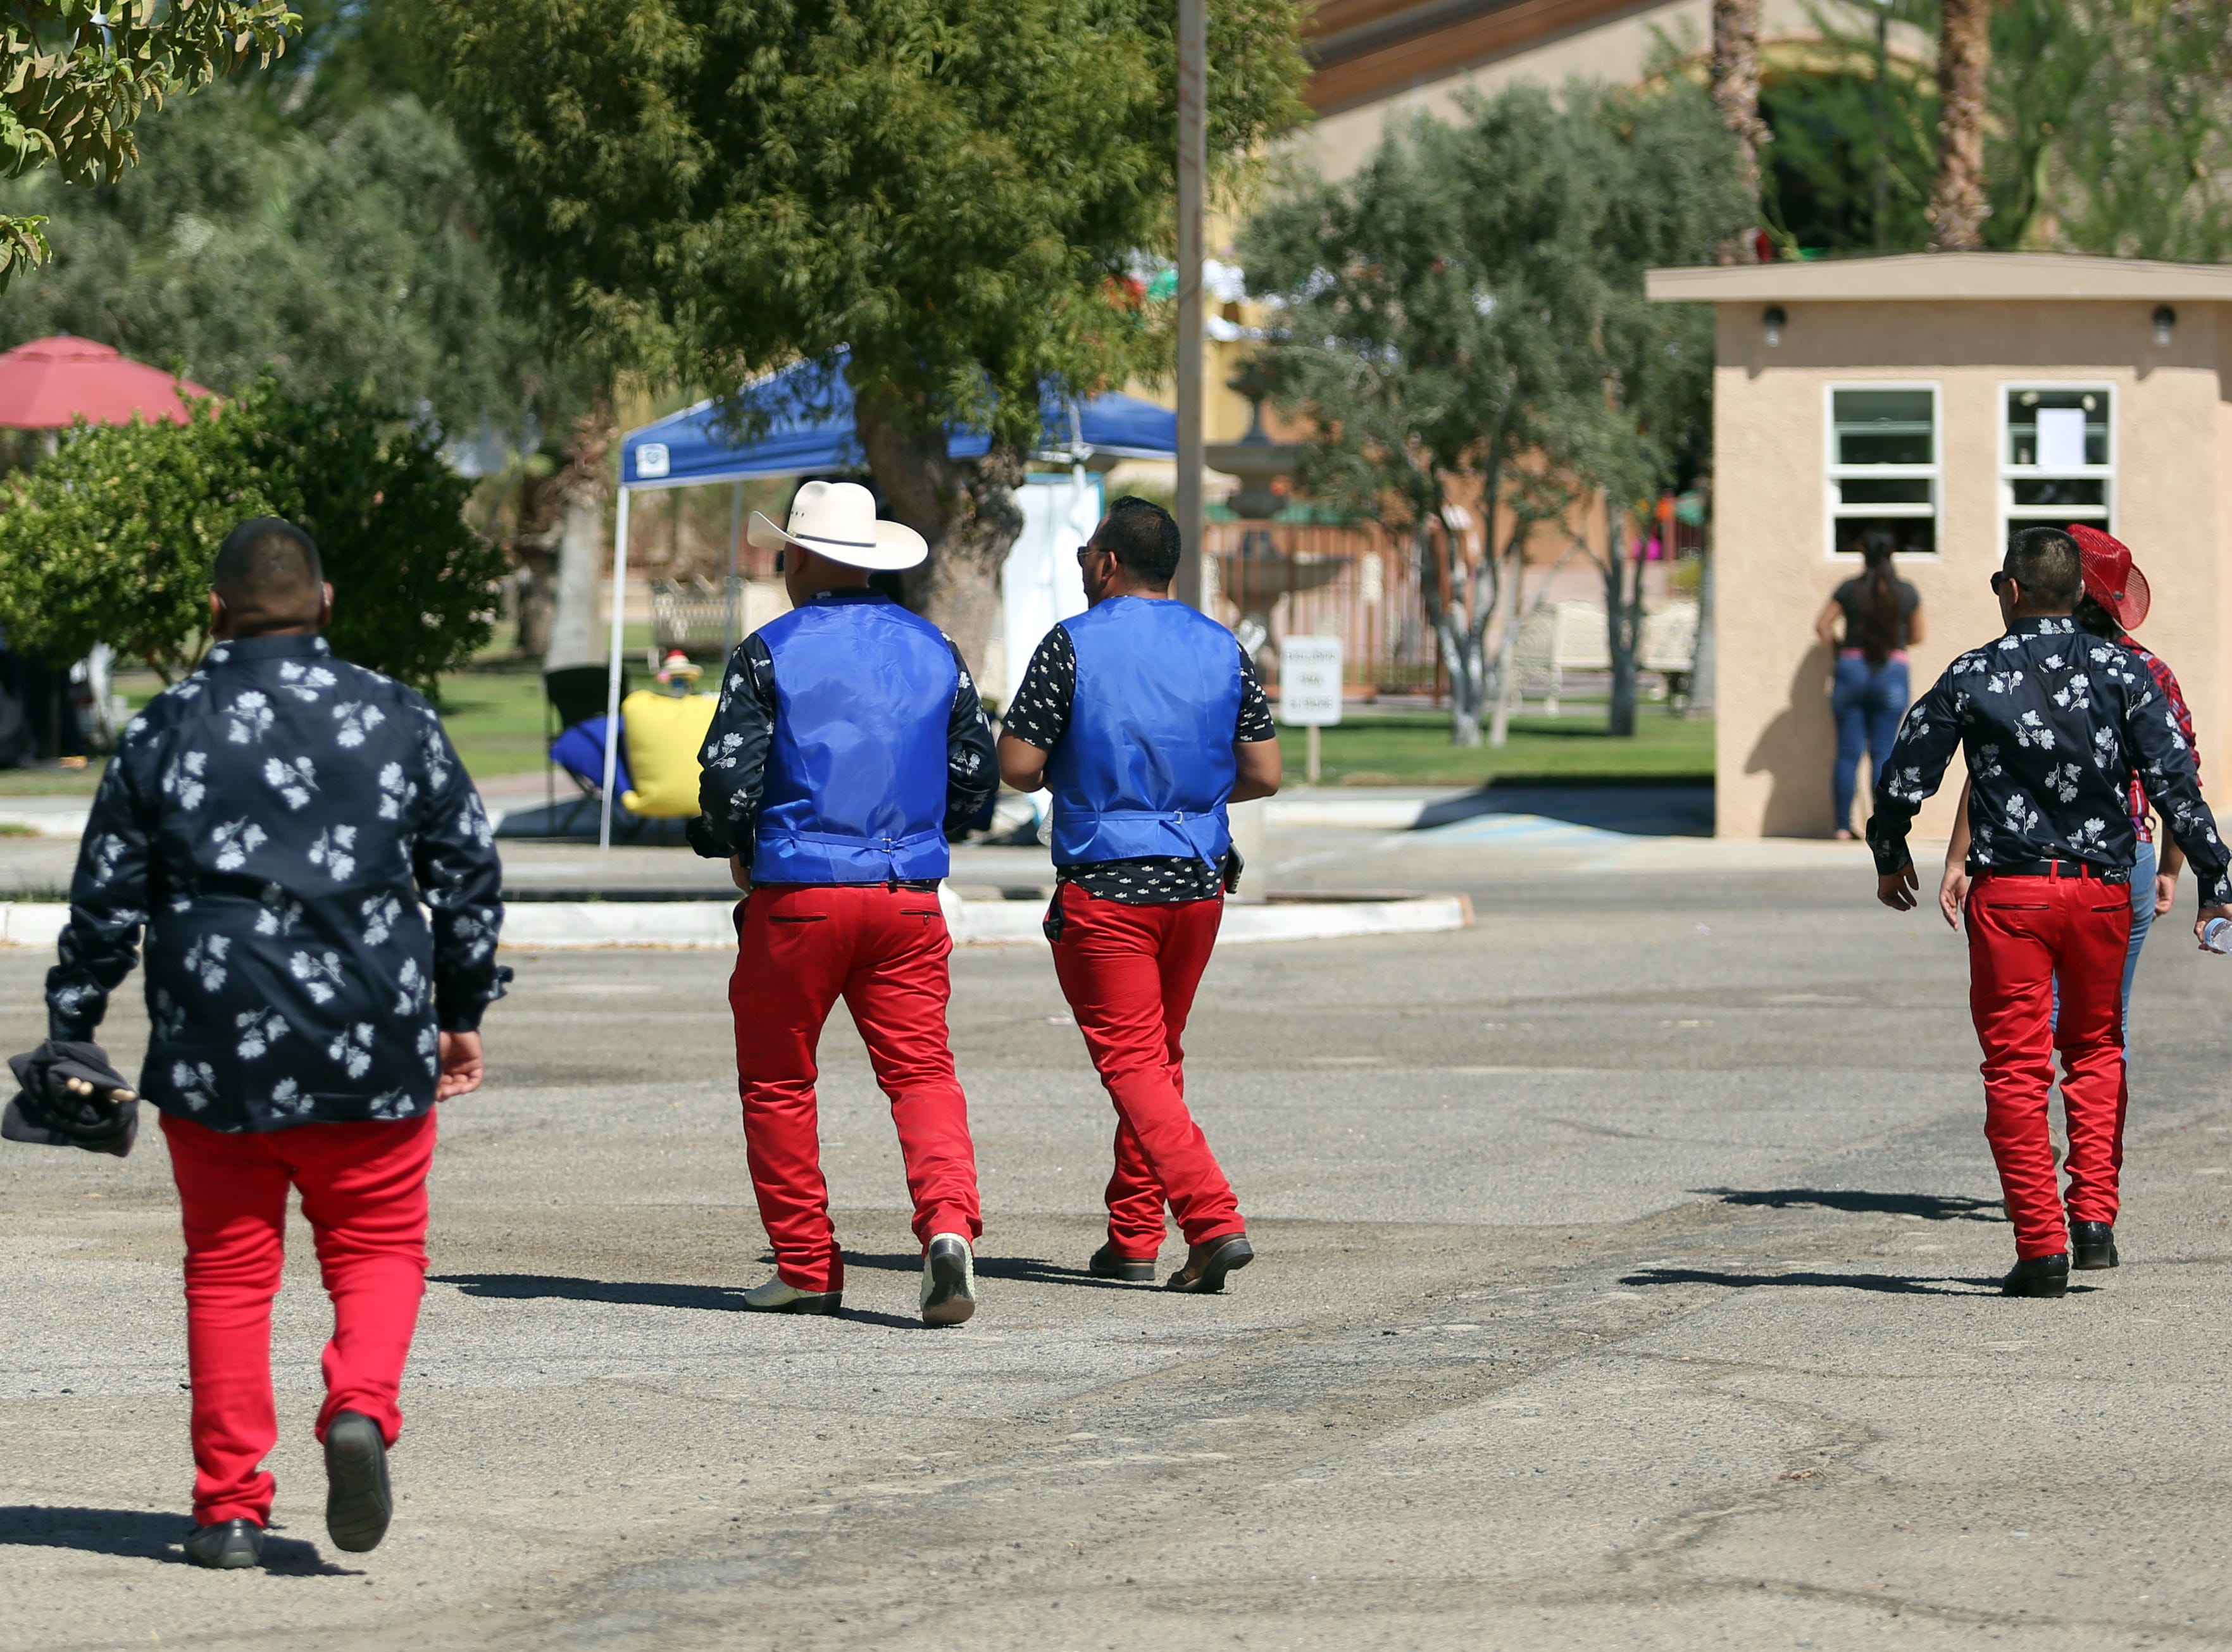 Men in red pants at the Mexican independence day celebration at Our Virgin of Guadalupe Church in Mecca on Saturday, September 15, 2018.